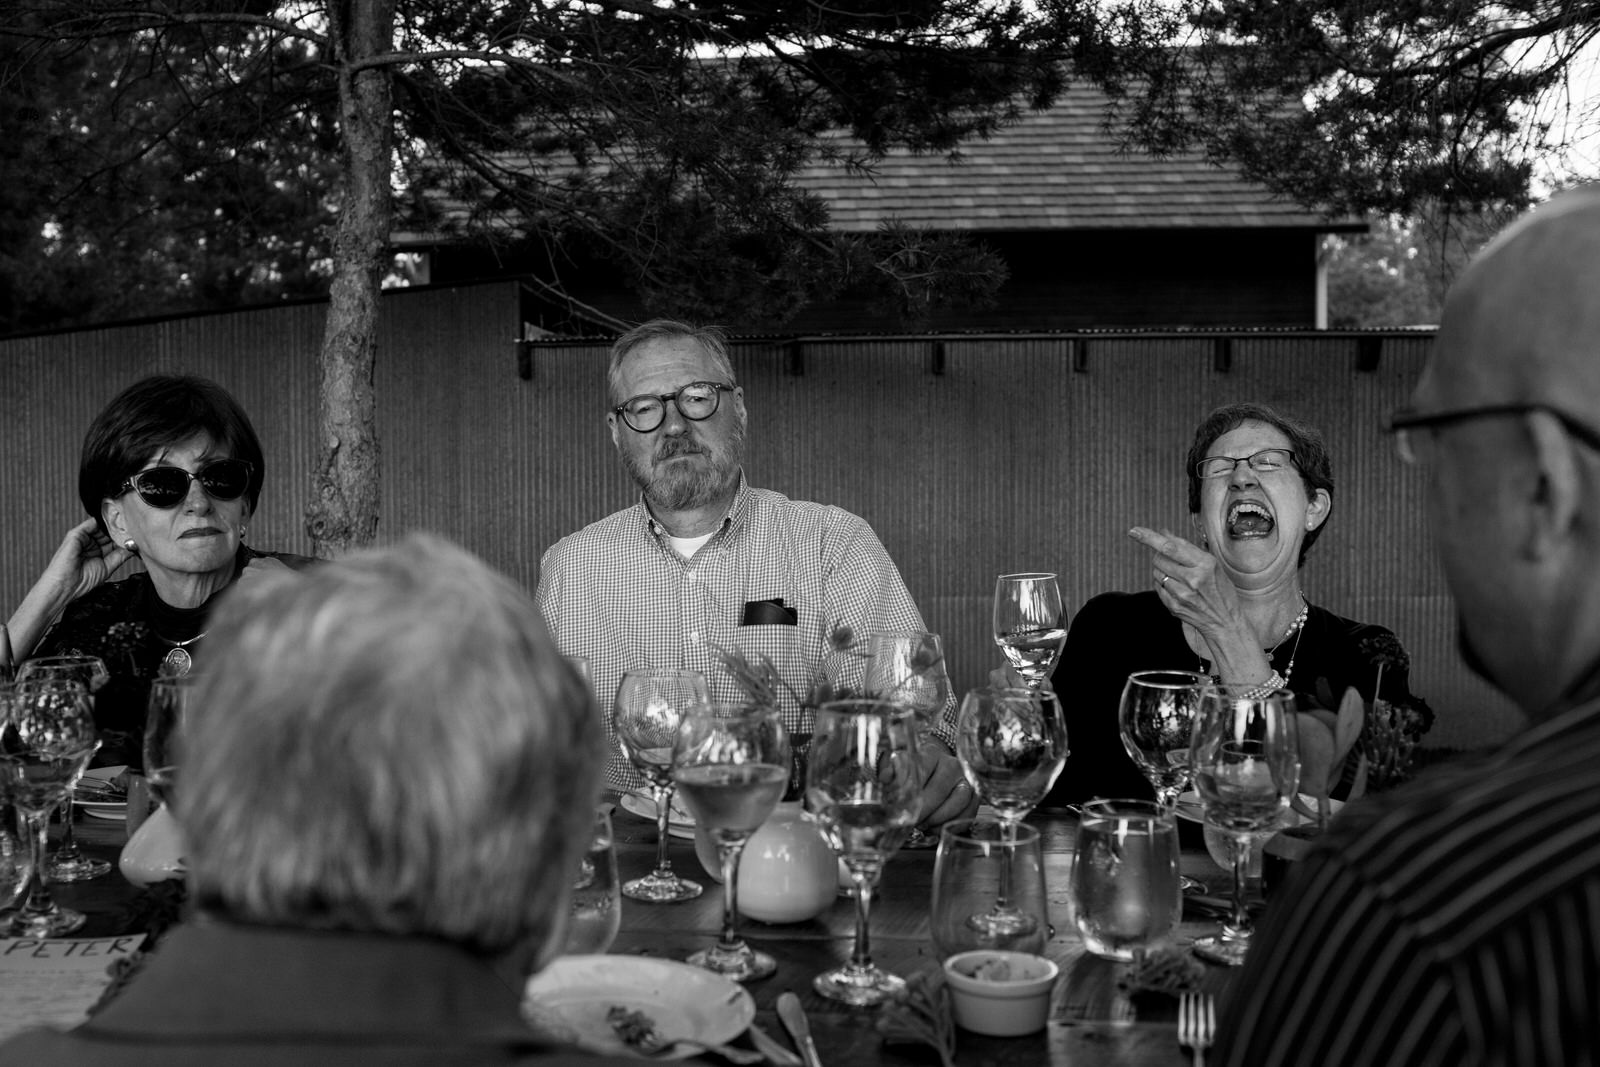 black and white of guests at dinner, one woman laughing hysterically while pointing at the guy sitting next to her who is frowning